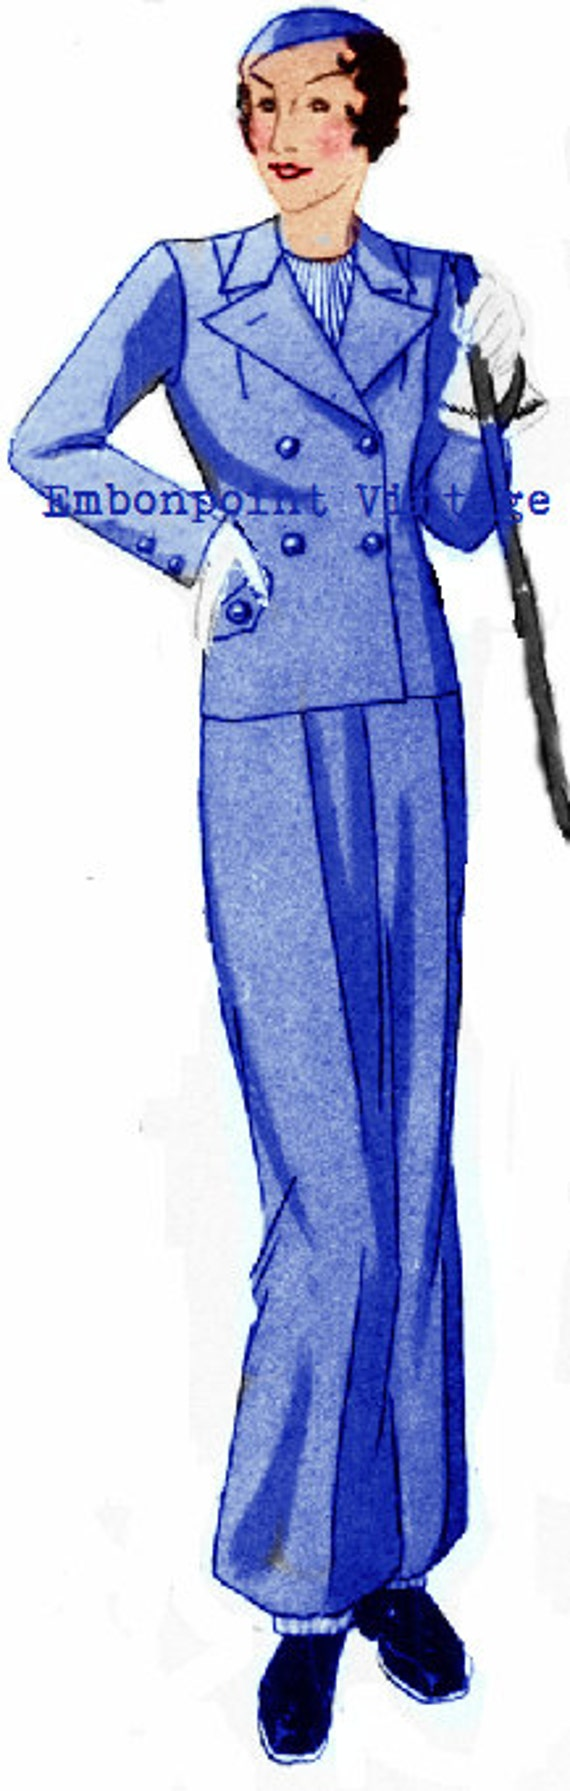 1930s Sewing Patterns- Dresses, Pants, Tops 1934 Pant Skirt Suit - PDF - Pattern No 107 Earlene 1930s 30s Pattern Plus Size Pattern (or any size)  AT vintagedancer.com